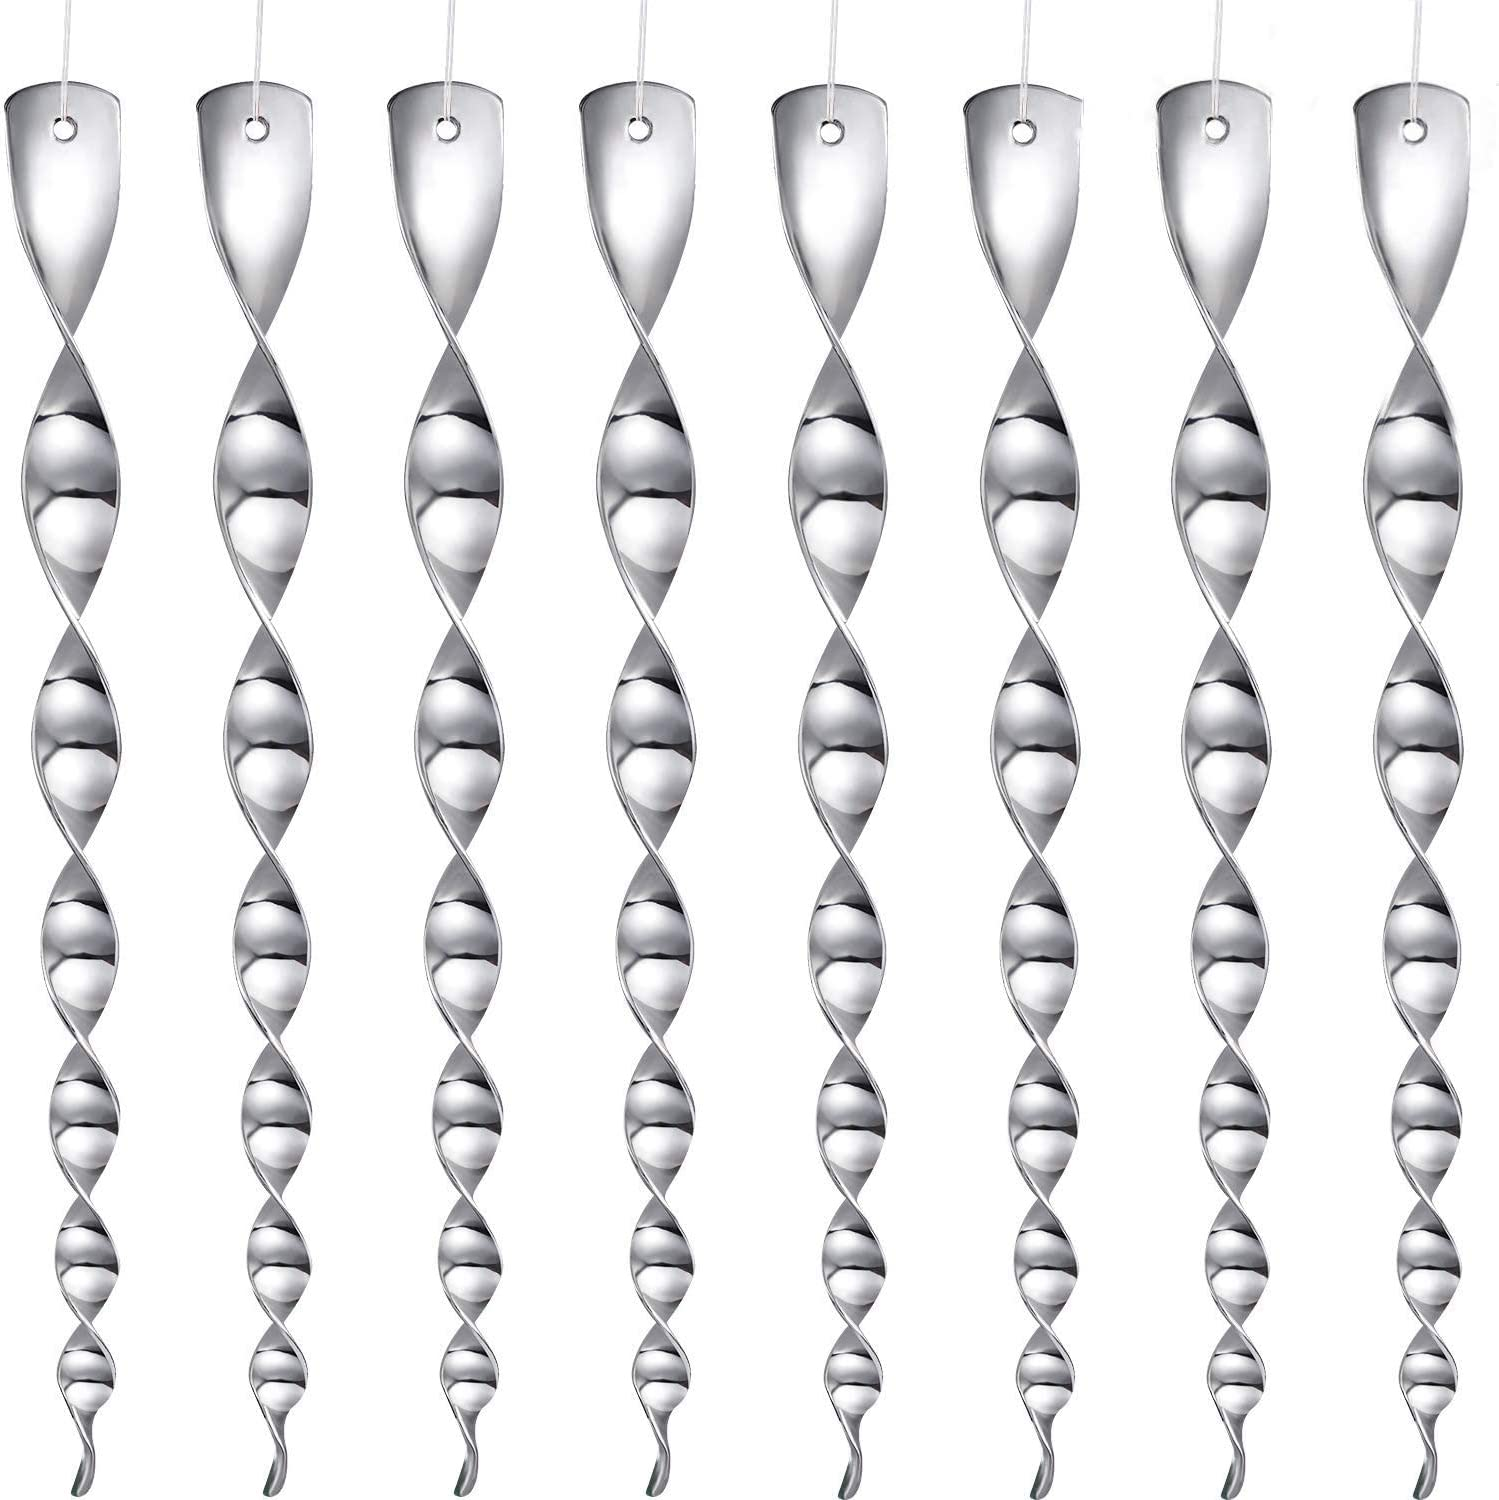 Maitys 16 Pack Bird Wind Twisting Reflective Scare Rods 12 Inch Effective and Attractive Hanging (Silver)